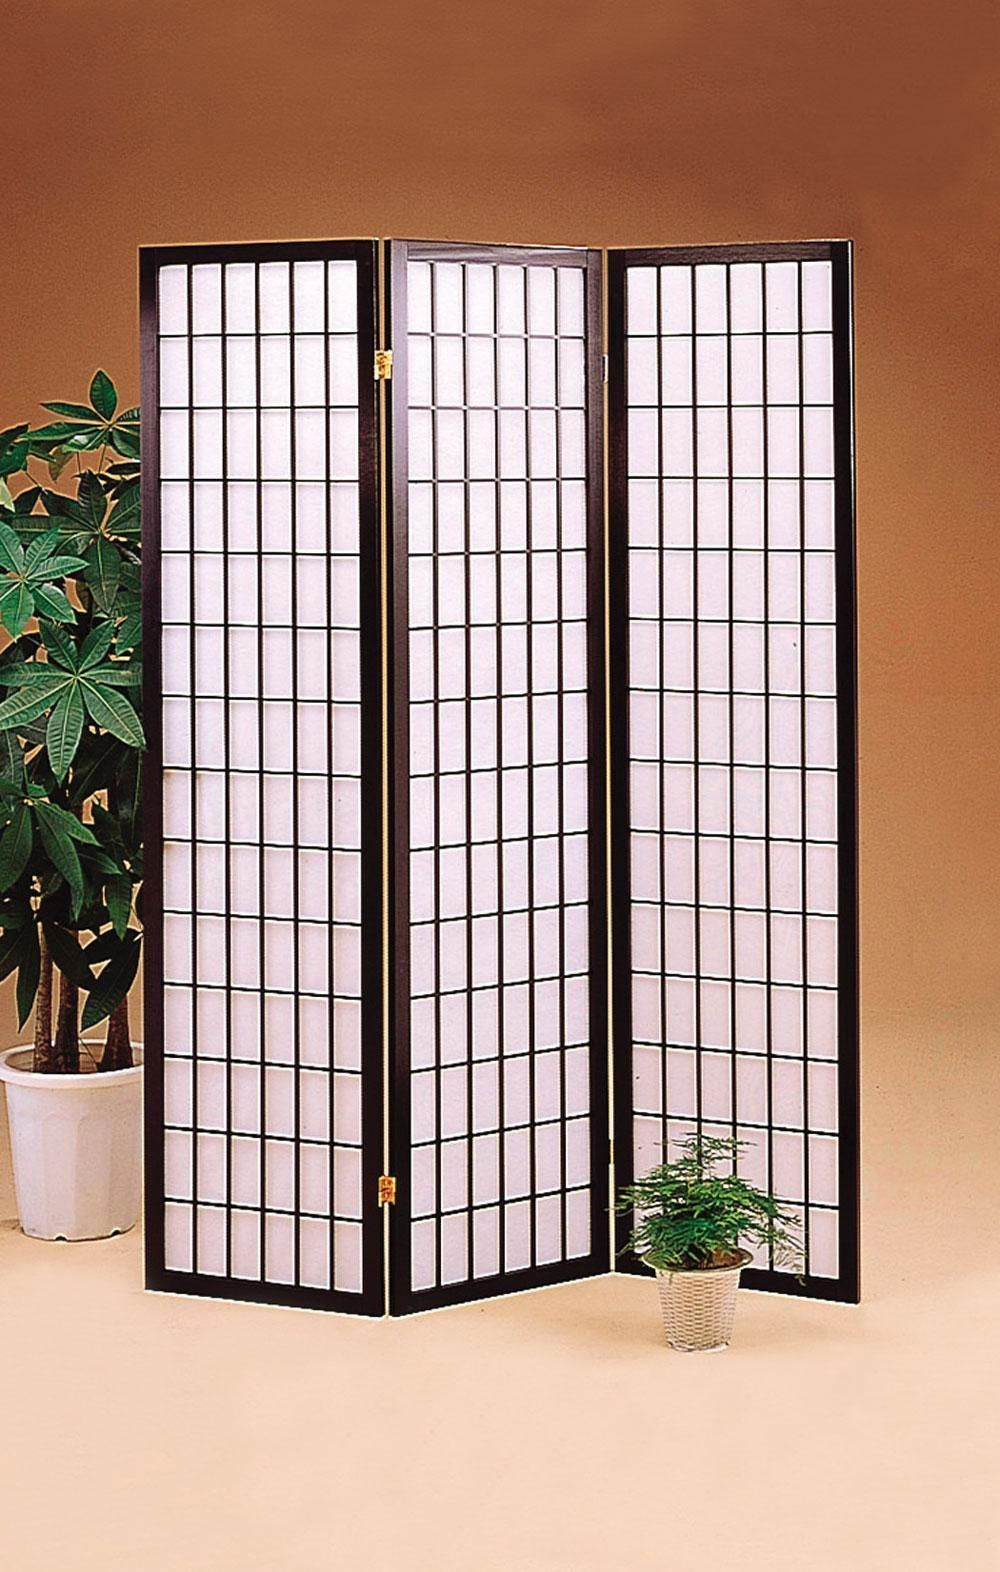 3 Panel Screen, Room Driver Furniture #DiningRoomDivider